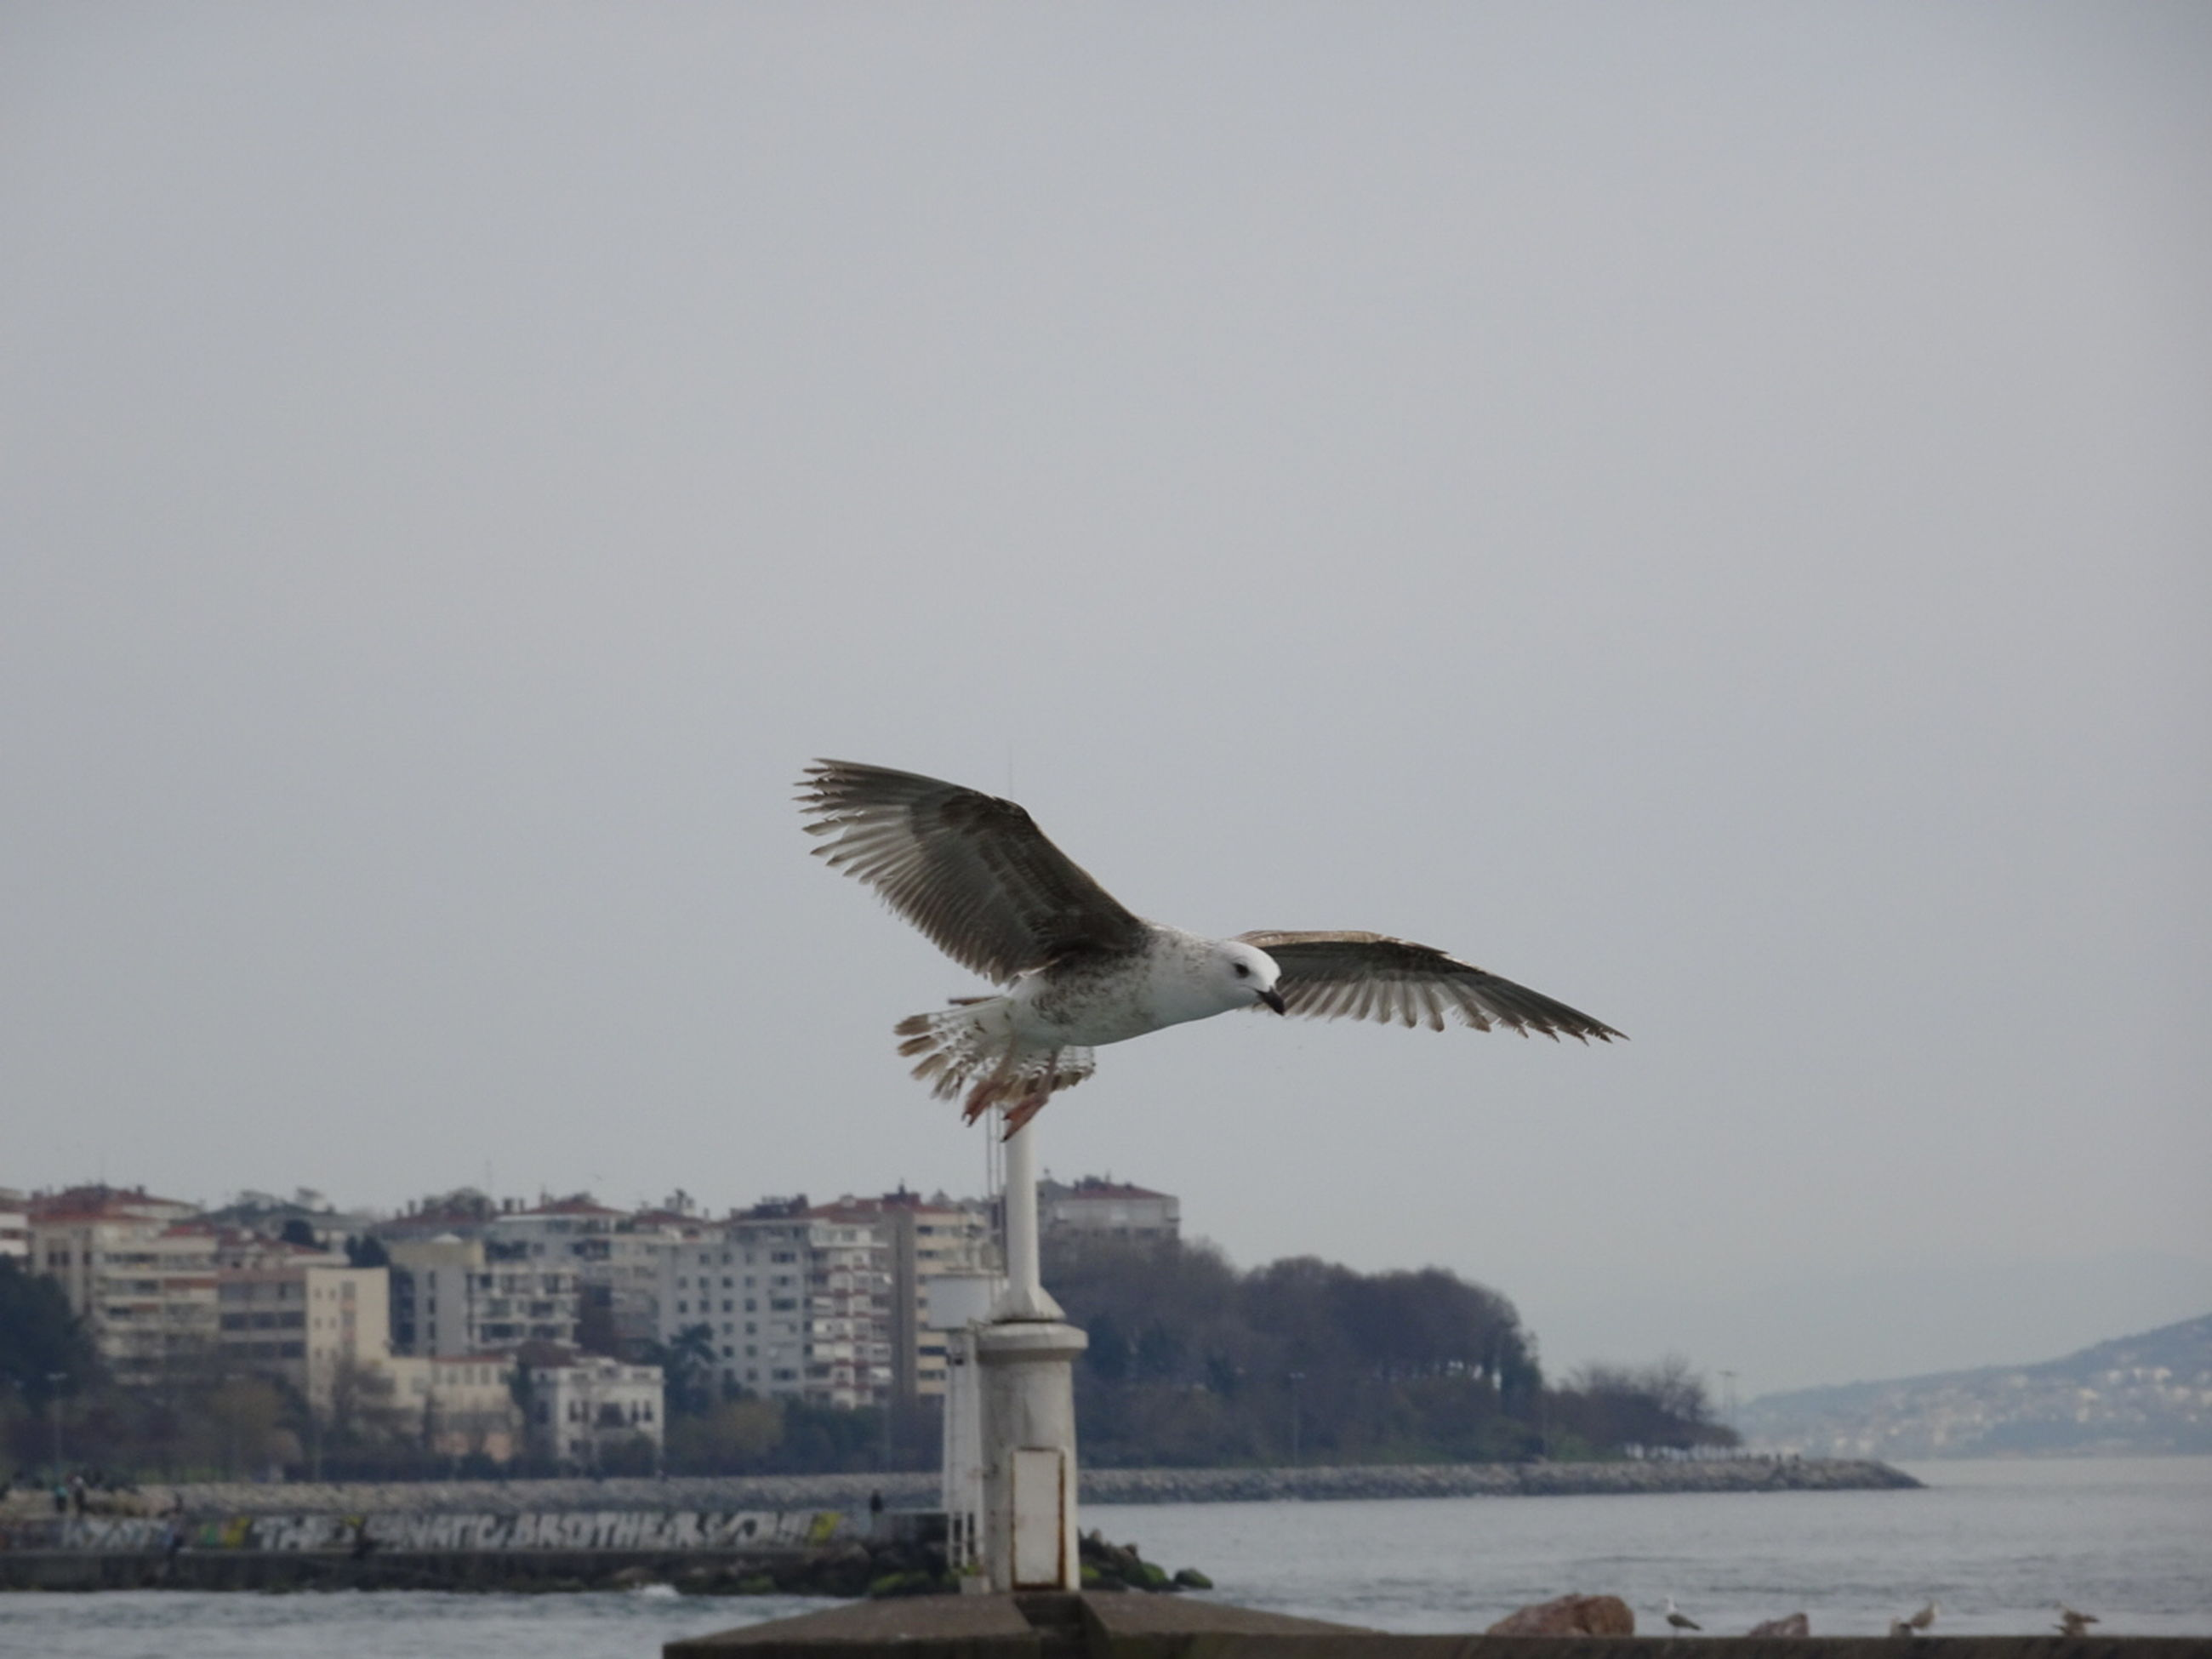 bird, animal themes, animals in the wild, seagull, wildlife, one animal, flying, spread wings, water, clear sky, sea, copy space, mid-air, perching, nature, side view, day, full length, sea bird, built structure